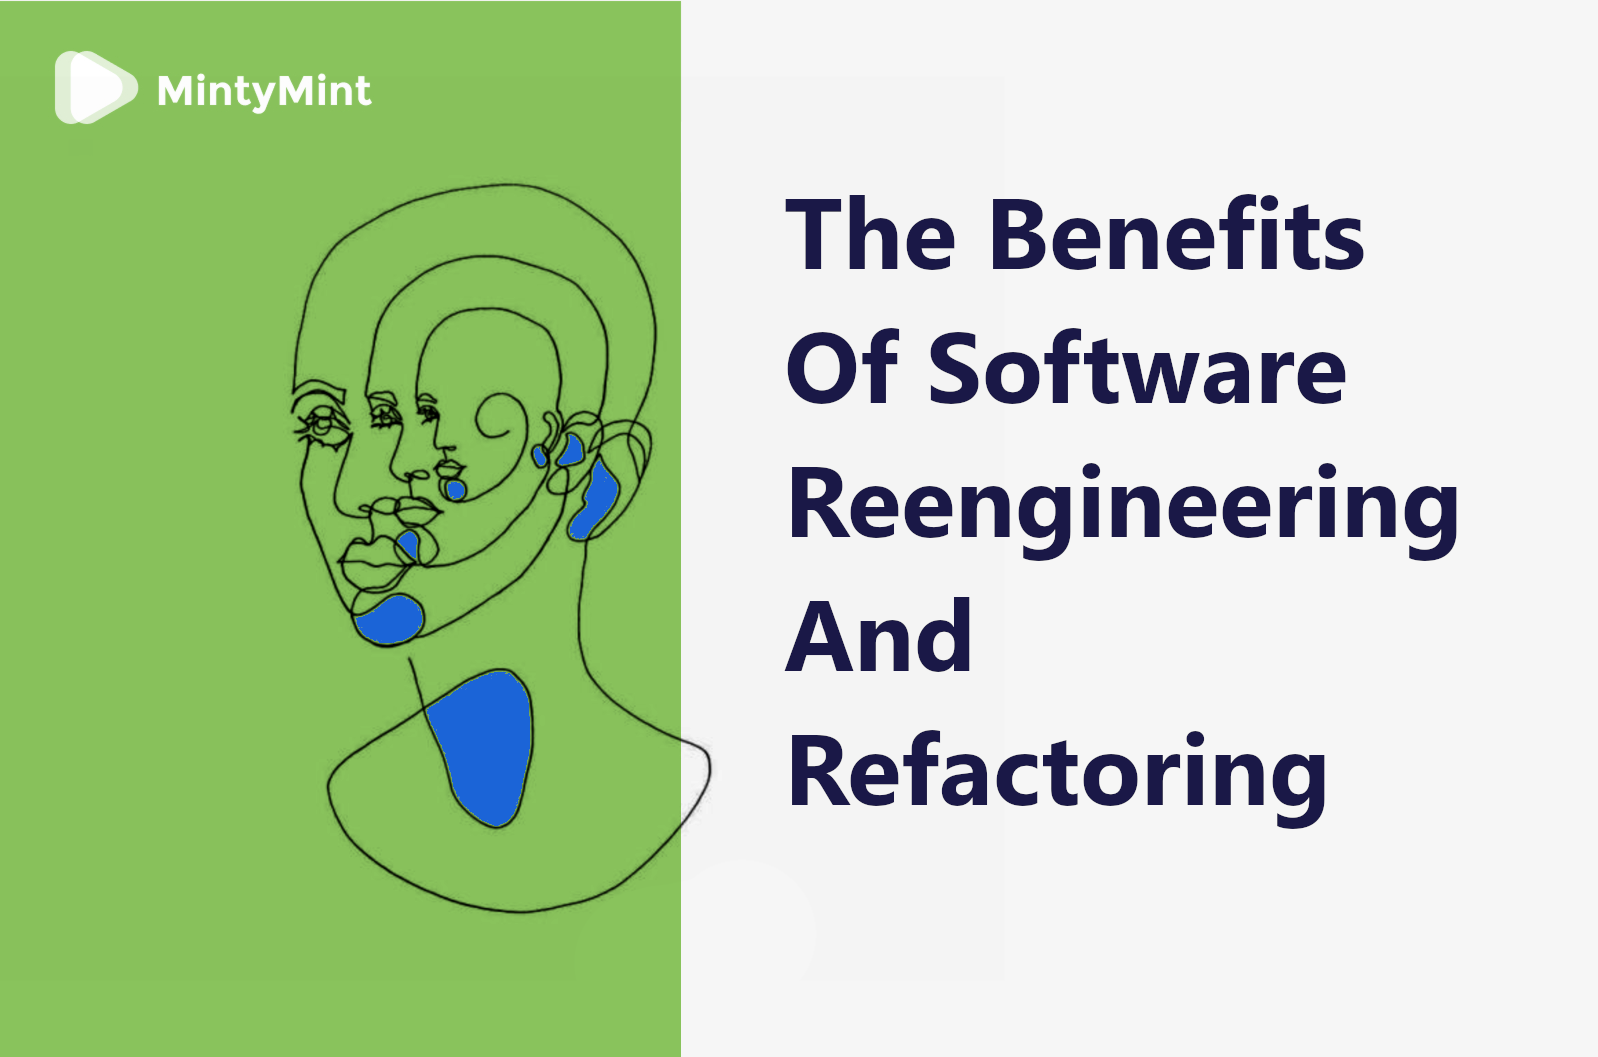 Software Reengineering